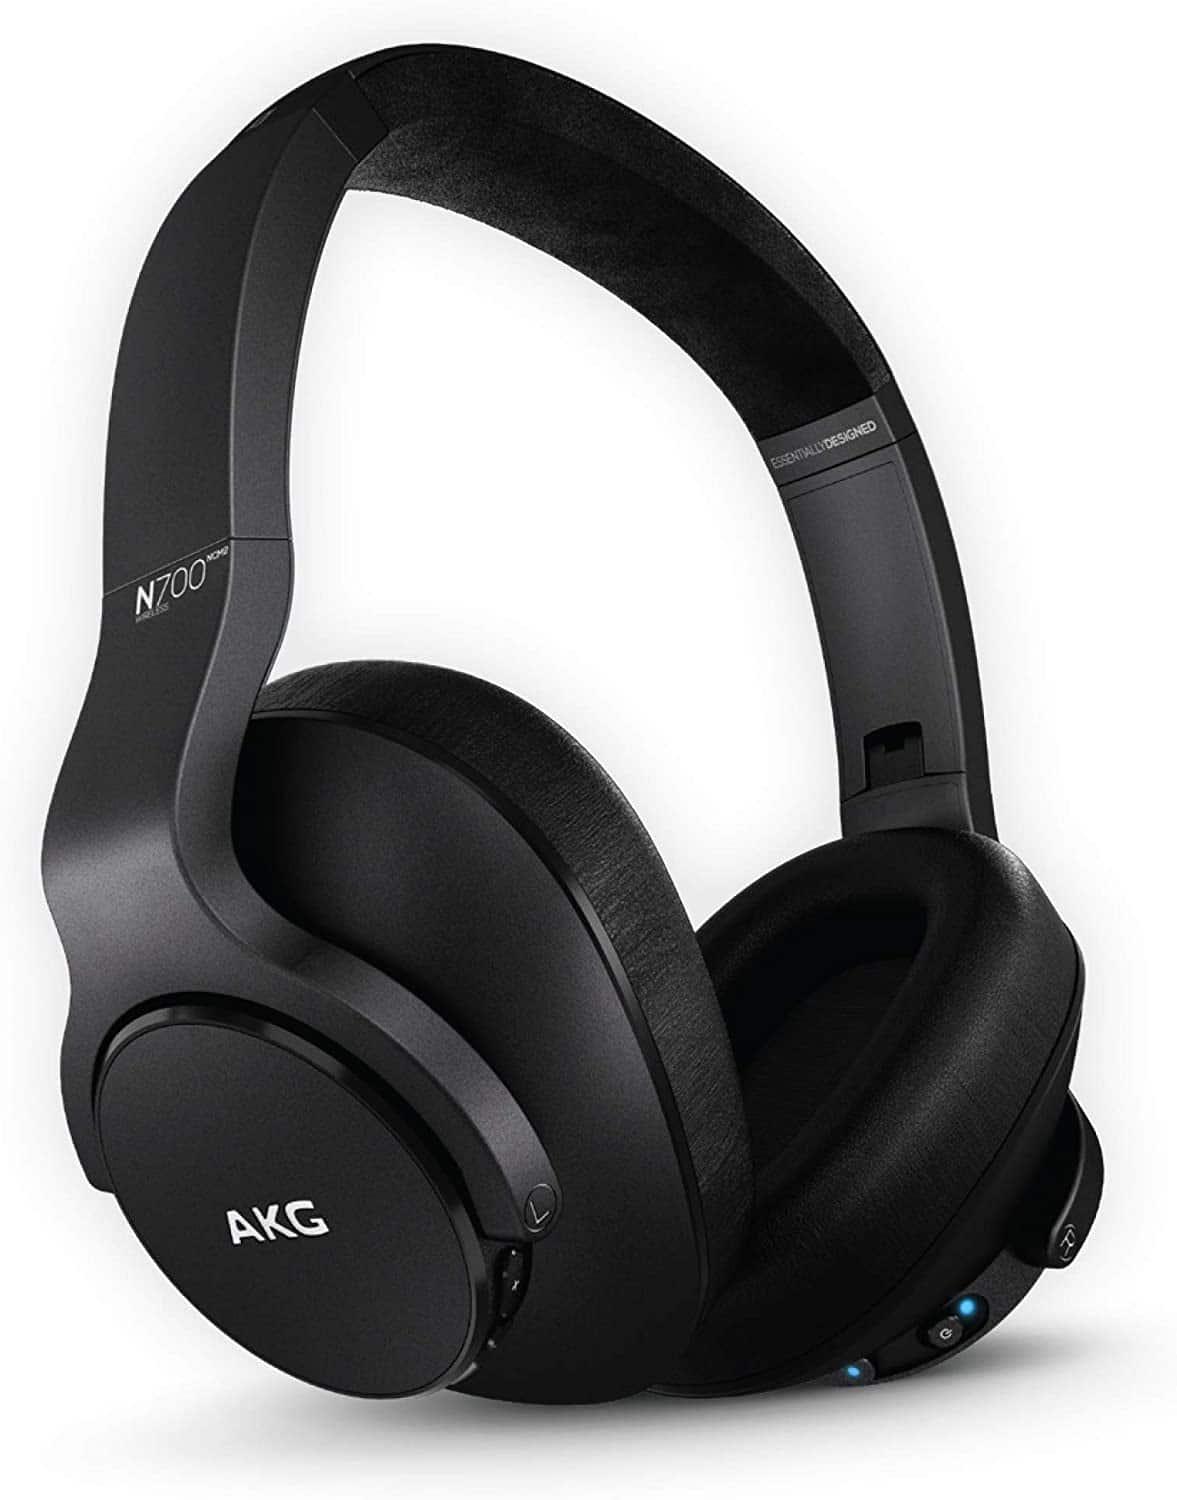 AKG N700NC M2 Bluetooth Active Noise Cancelling Wireless Headphones - Black - Amazon Warehouse USED $76.32